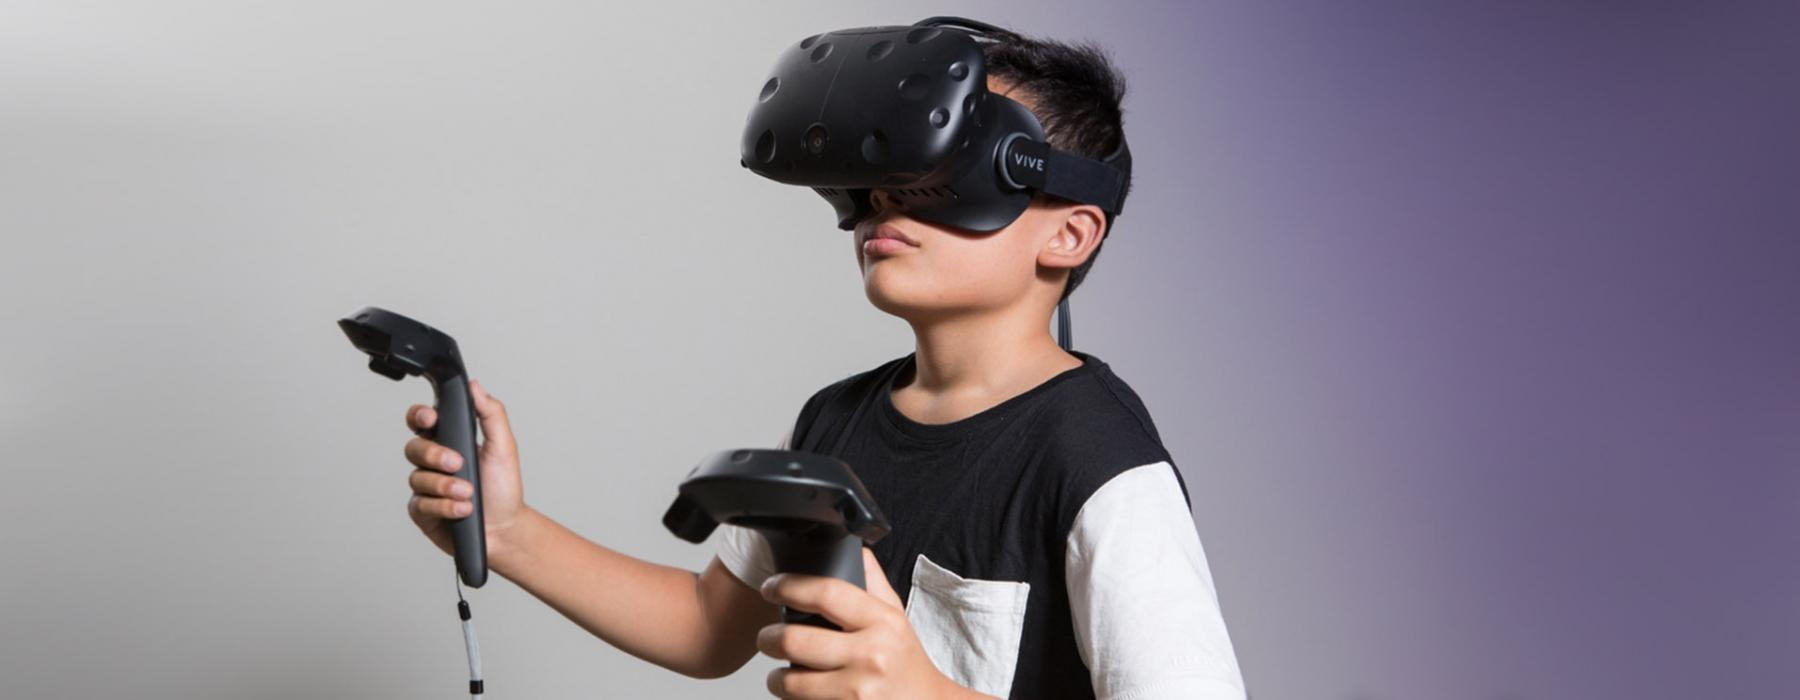 A child plays with virtual reality technology